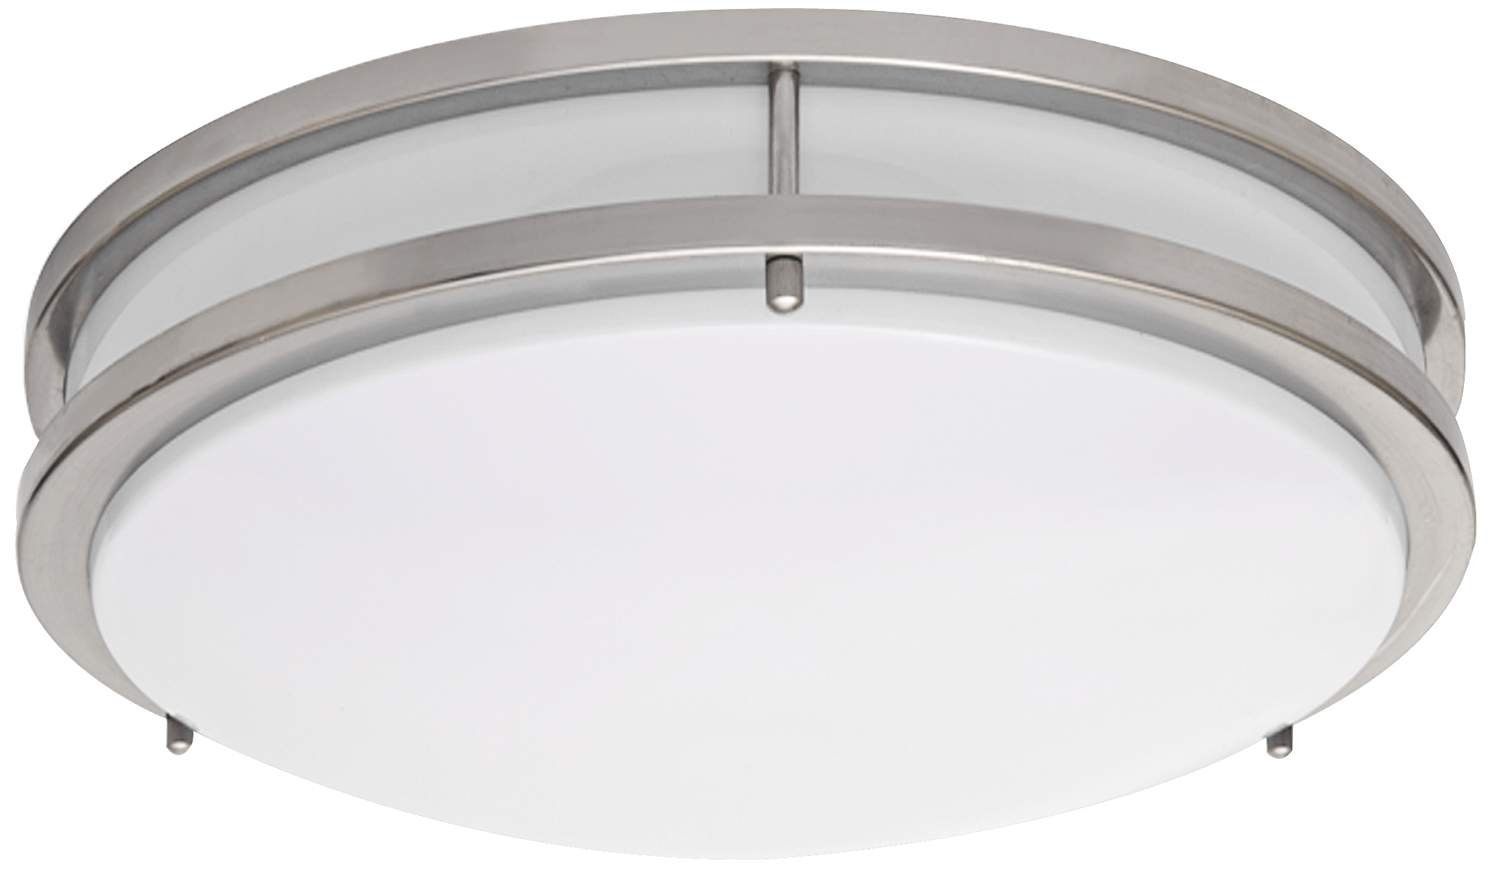 Led Ceiling Lights Usa : Related keywords suggestions for led ceiling light fixtures